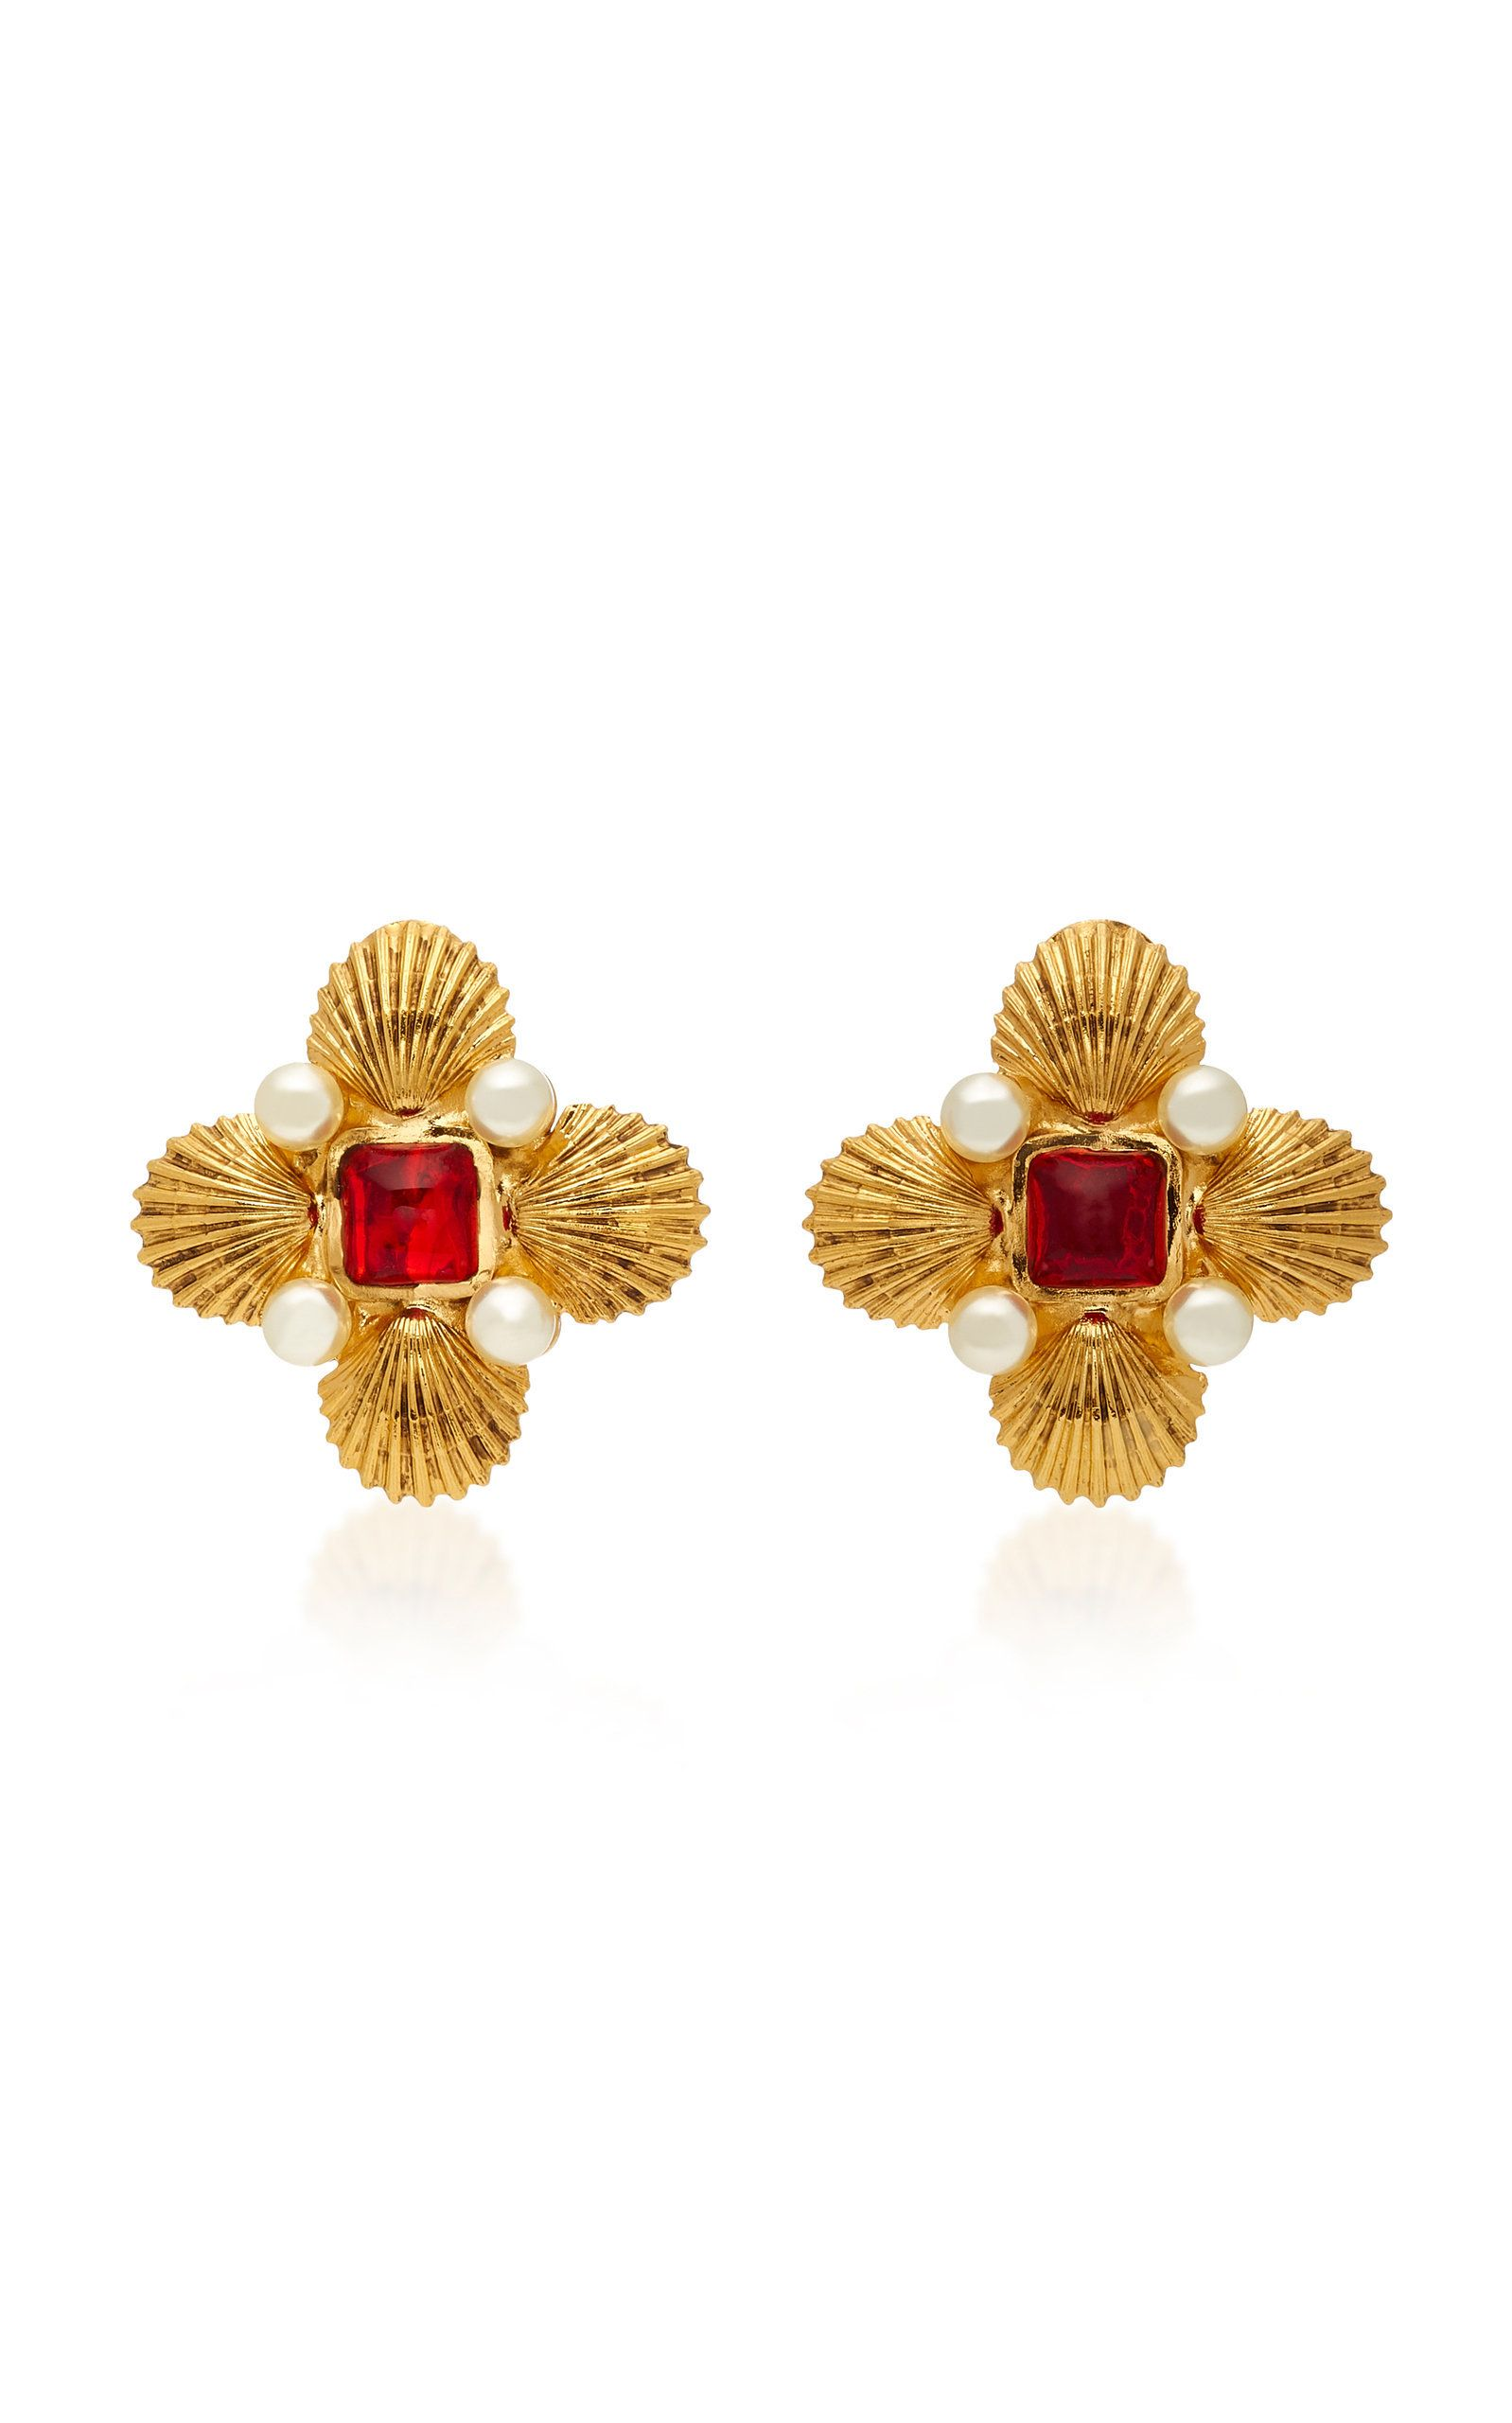 myshoplah stud grams earrings gold pure jewelry p